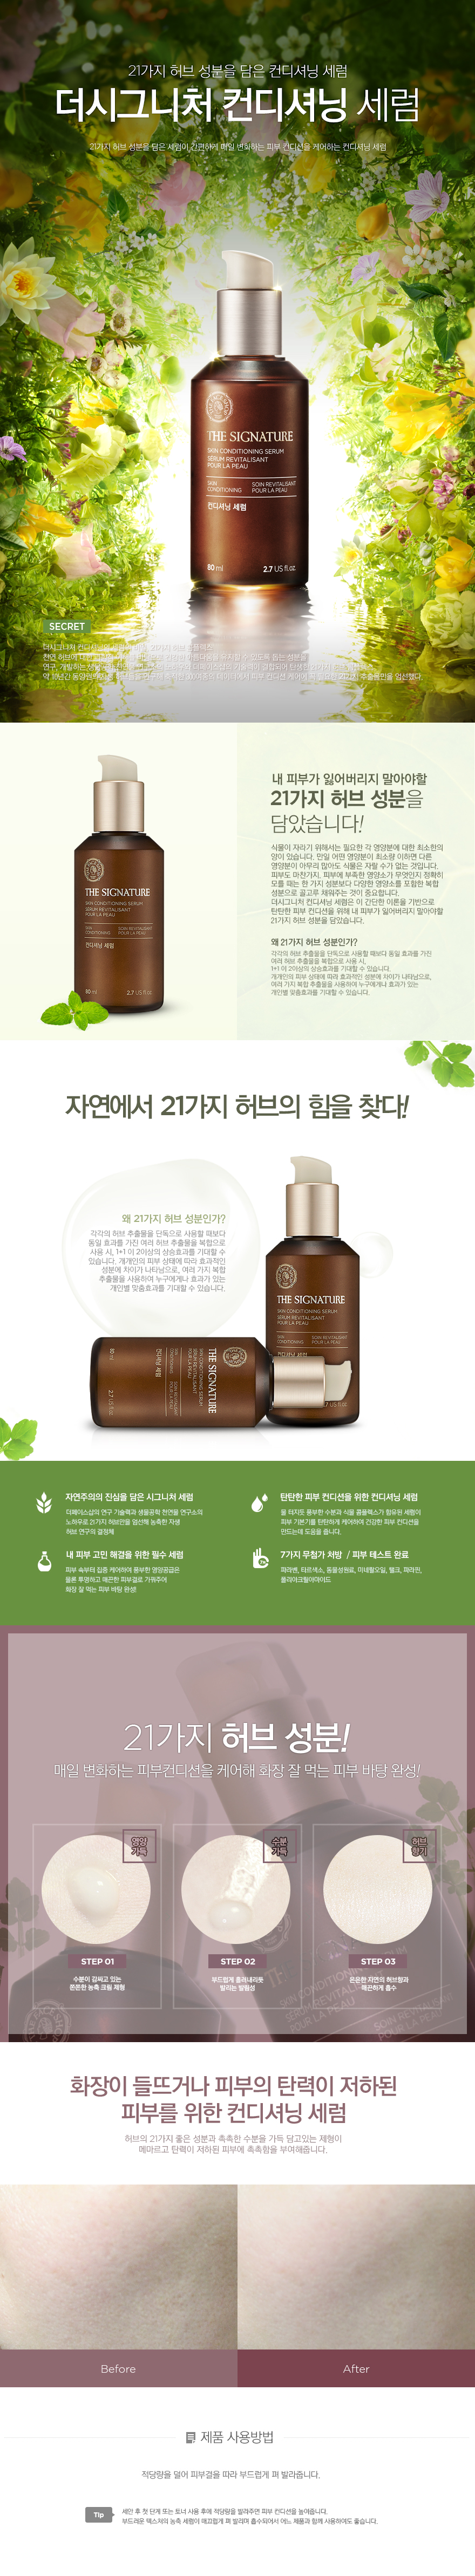 Serum dưỡng da THE FACE SHOP The Signature Conditioning Serum